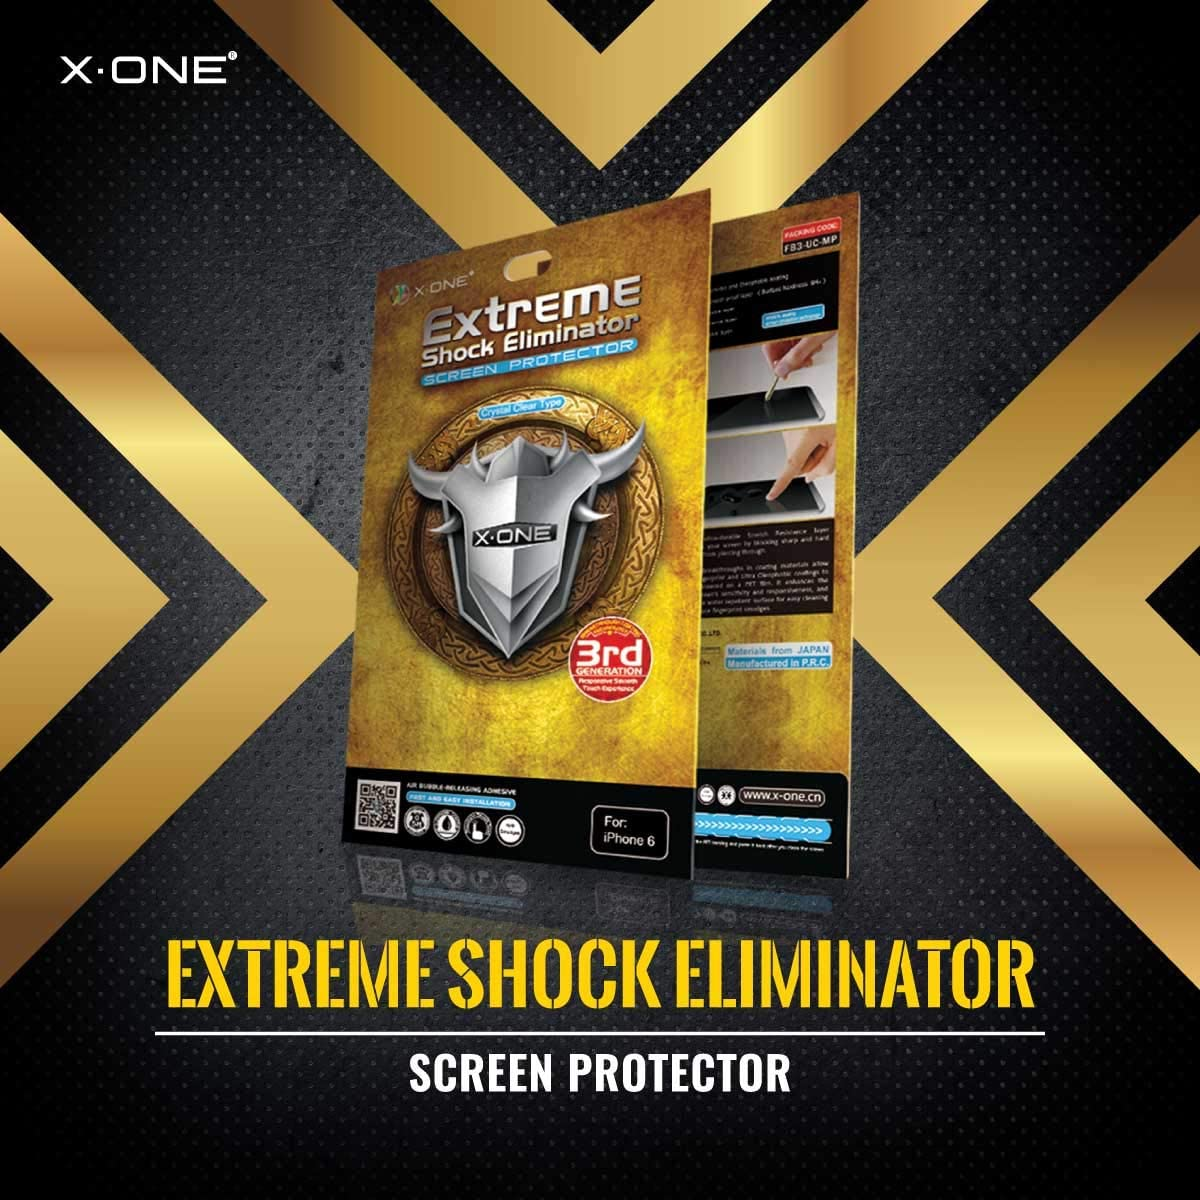 The Worlds Toughest Screen Protector Compatible with iPhone fits iPhone X Xs X/·ONE Extreme Shock Eliminator